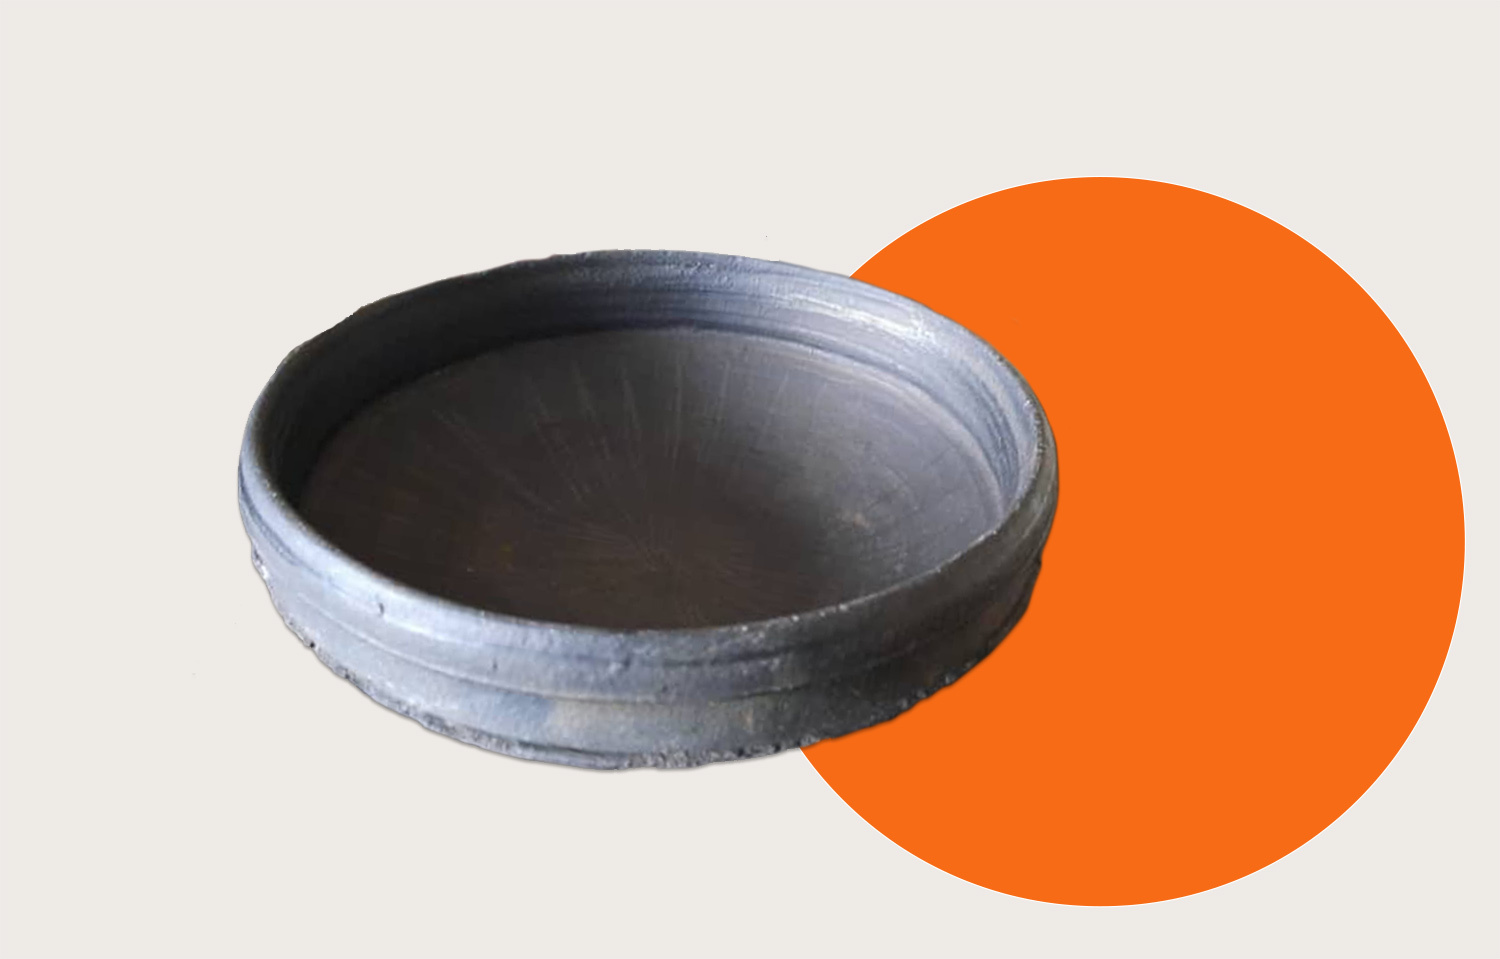 A clay pot on an abstract background